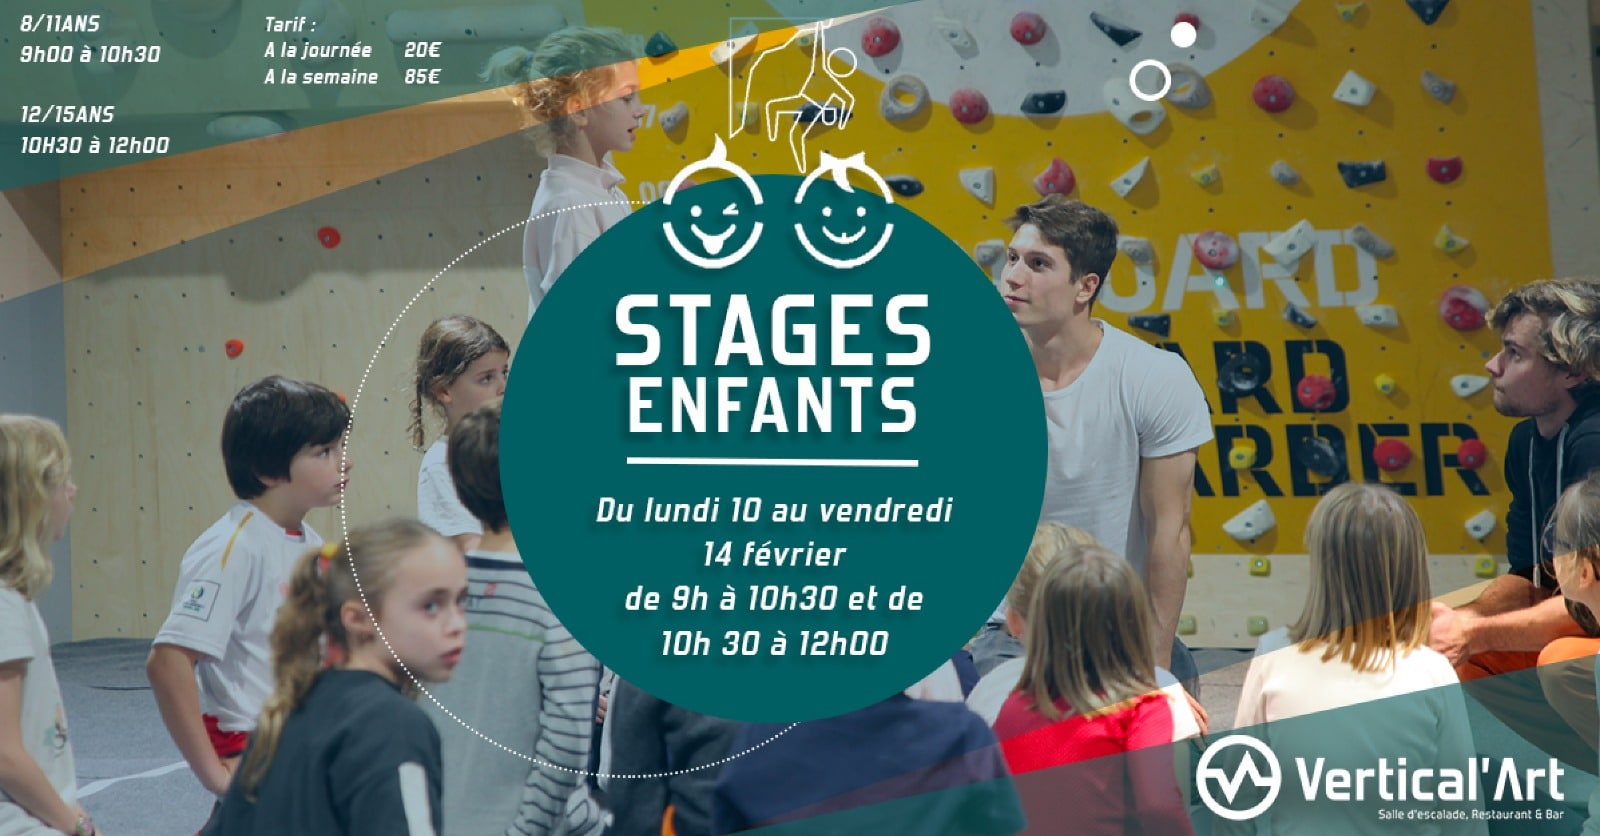 Stage d'escalade enfants vertical'art- Vertical'art pigalle Stages enfants - Paris Stages Enfants Vacances d'hiver